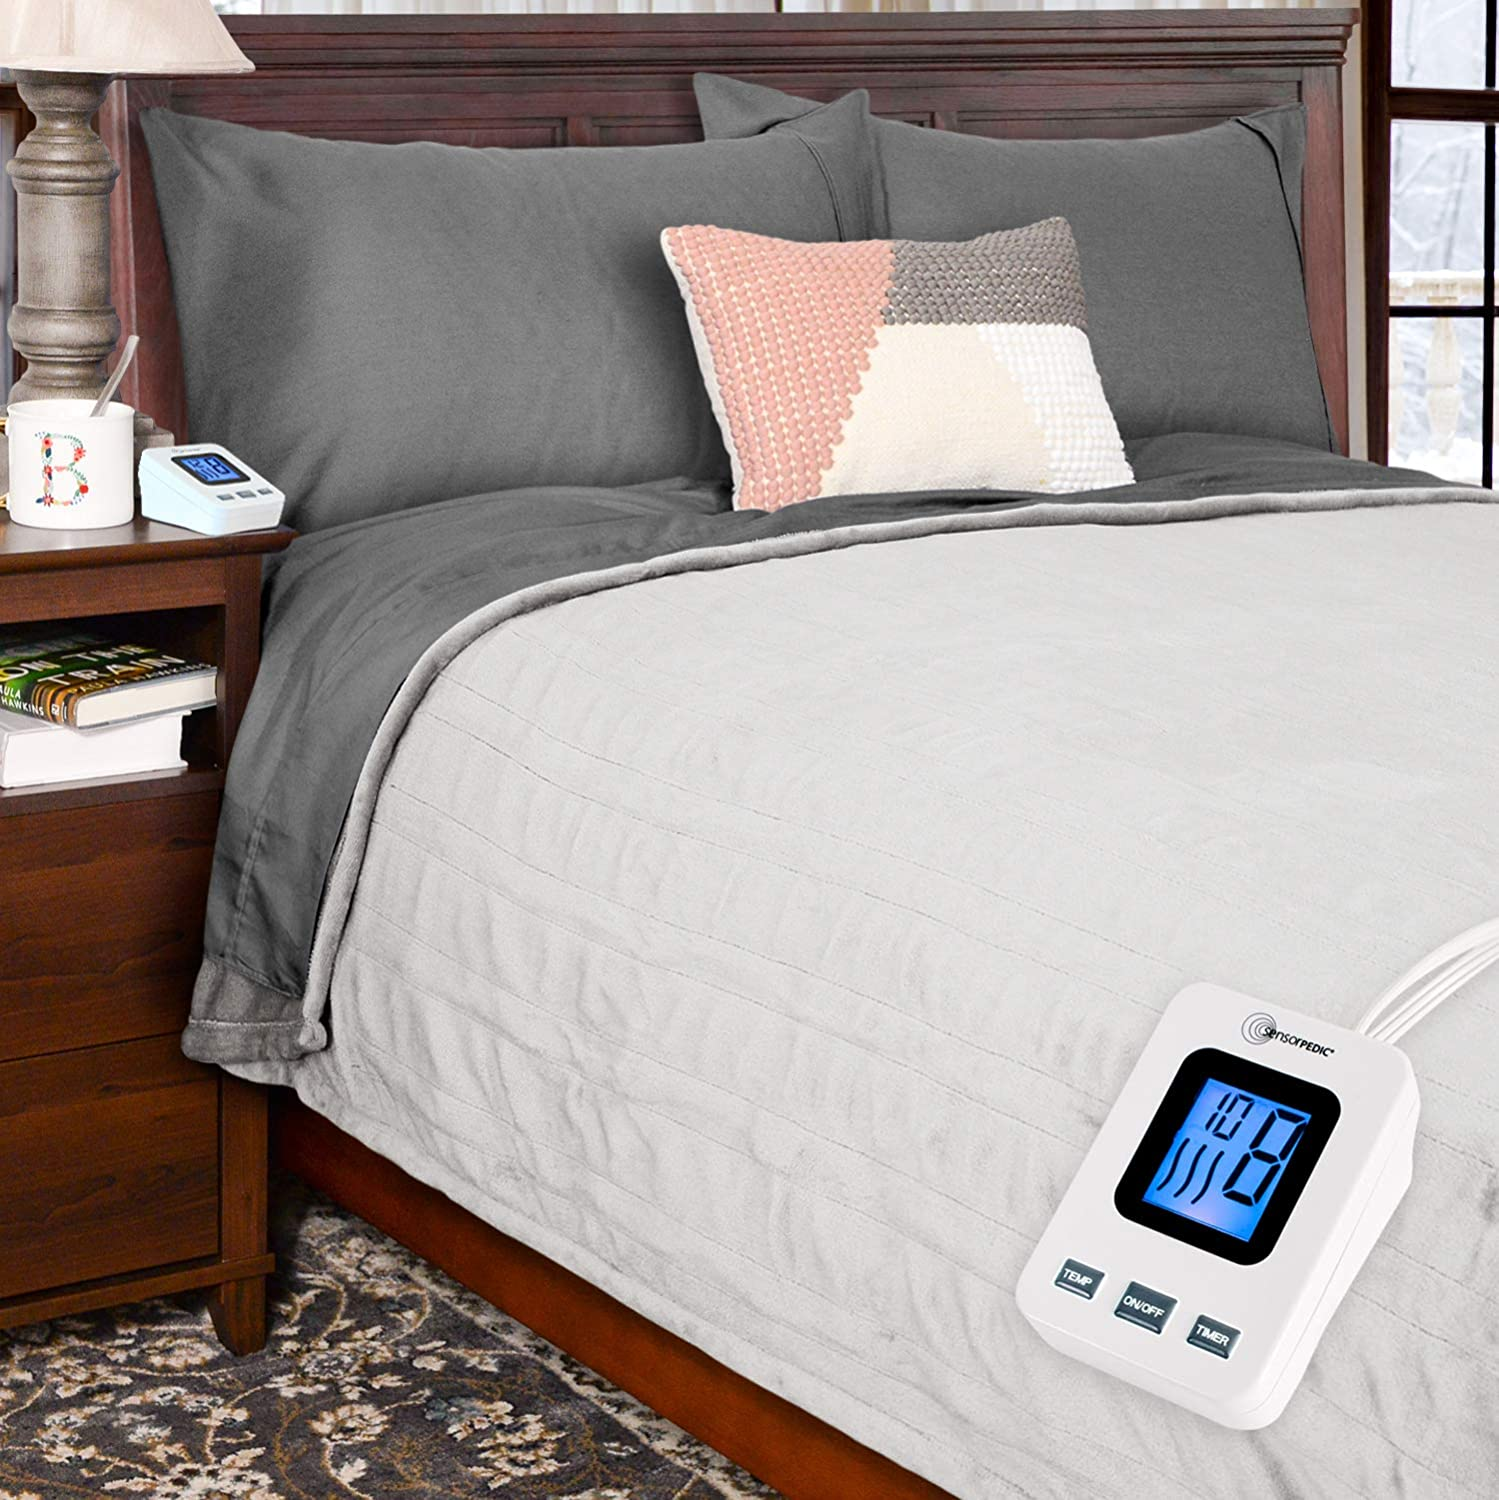 Simple Comfort Electric Heated Flannel Fleece Blanket with Sensor-Safe Overheat Technology – New for 2018 HIGH TEC Digital Controller (Ivory, Full w/Single Controller)